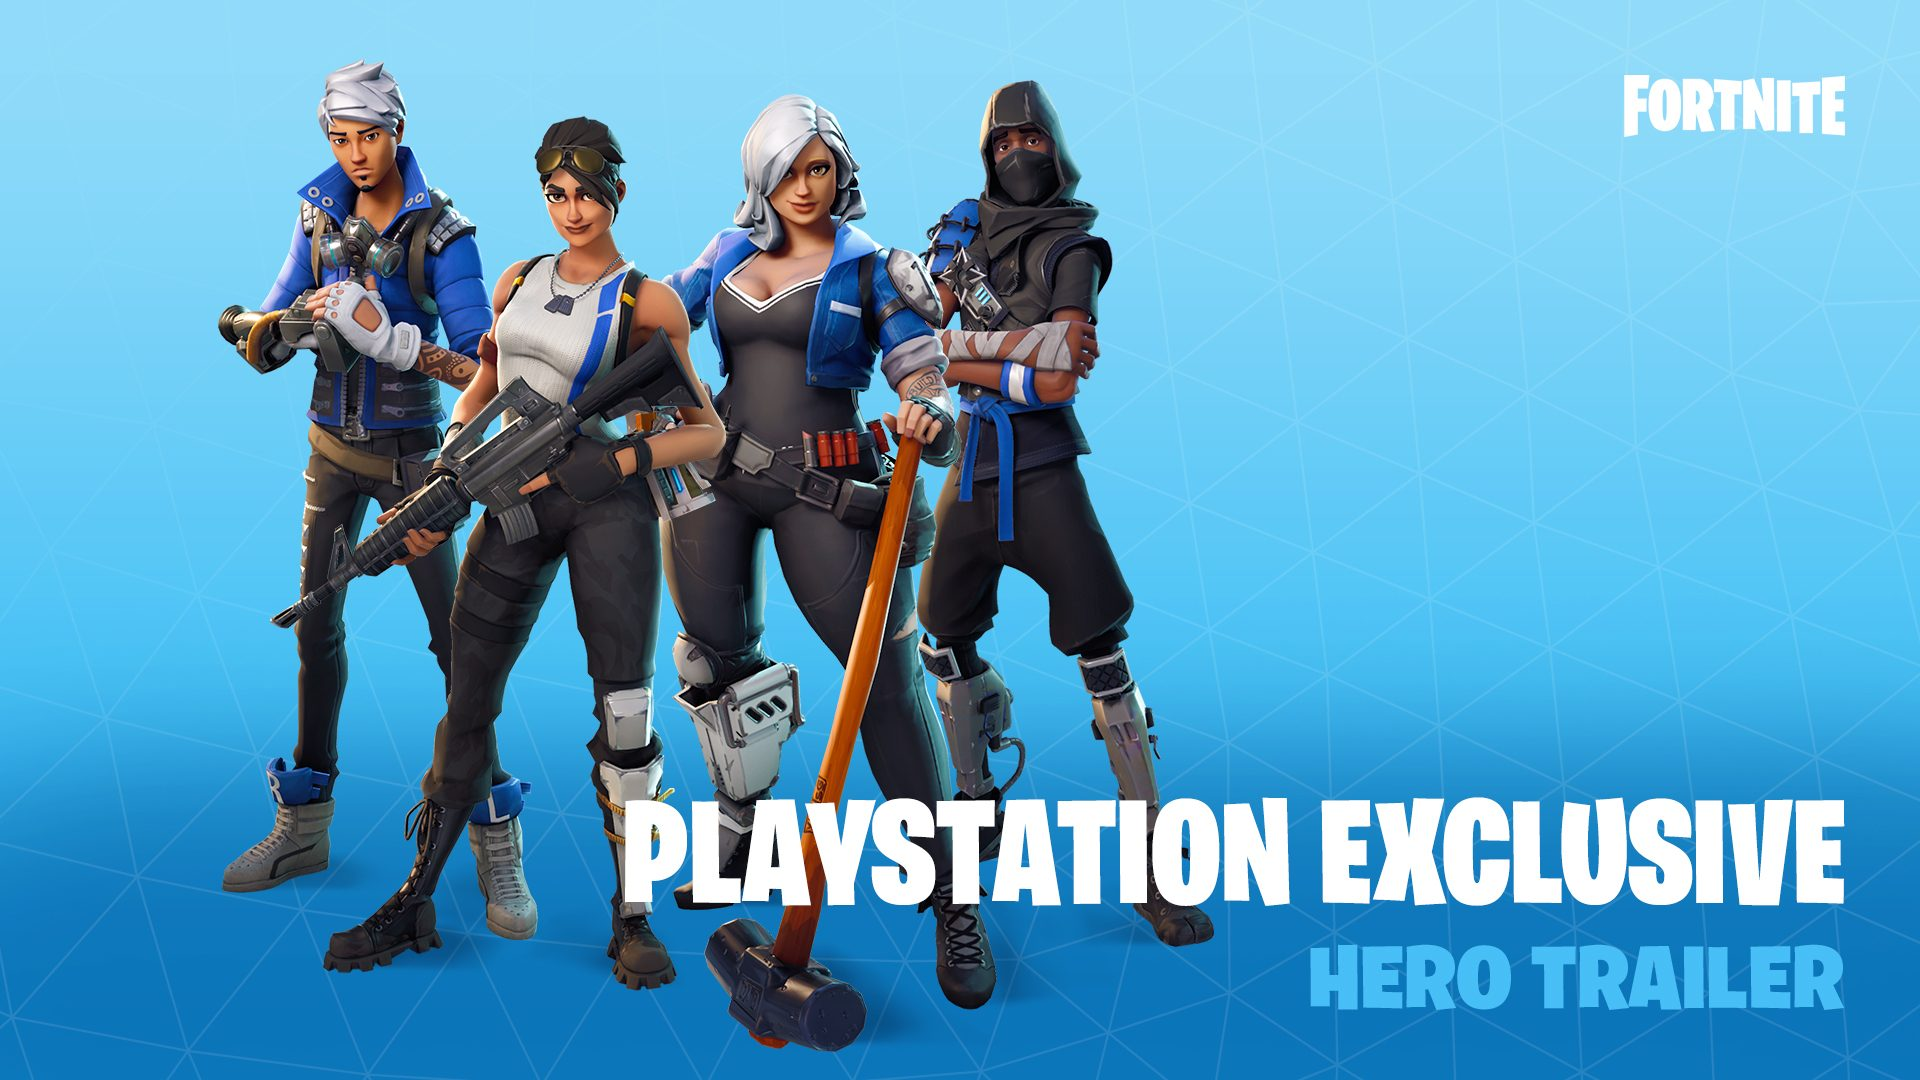 fortnite is here with exclusive ps4 heroes playstation blog exclusive ps4 heroes playstation